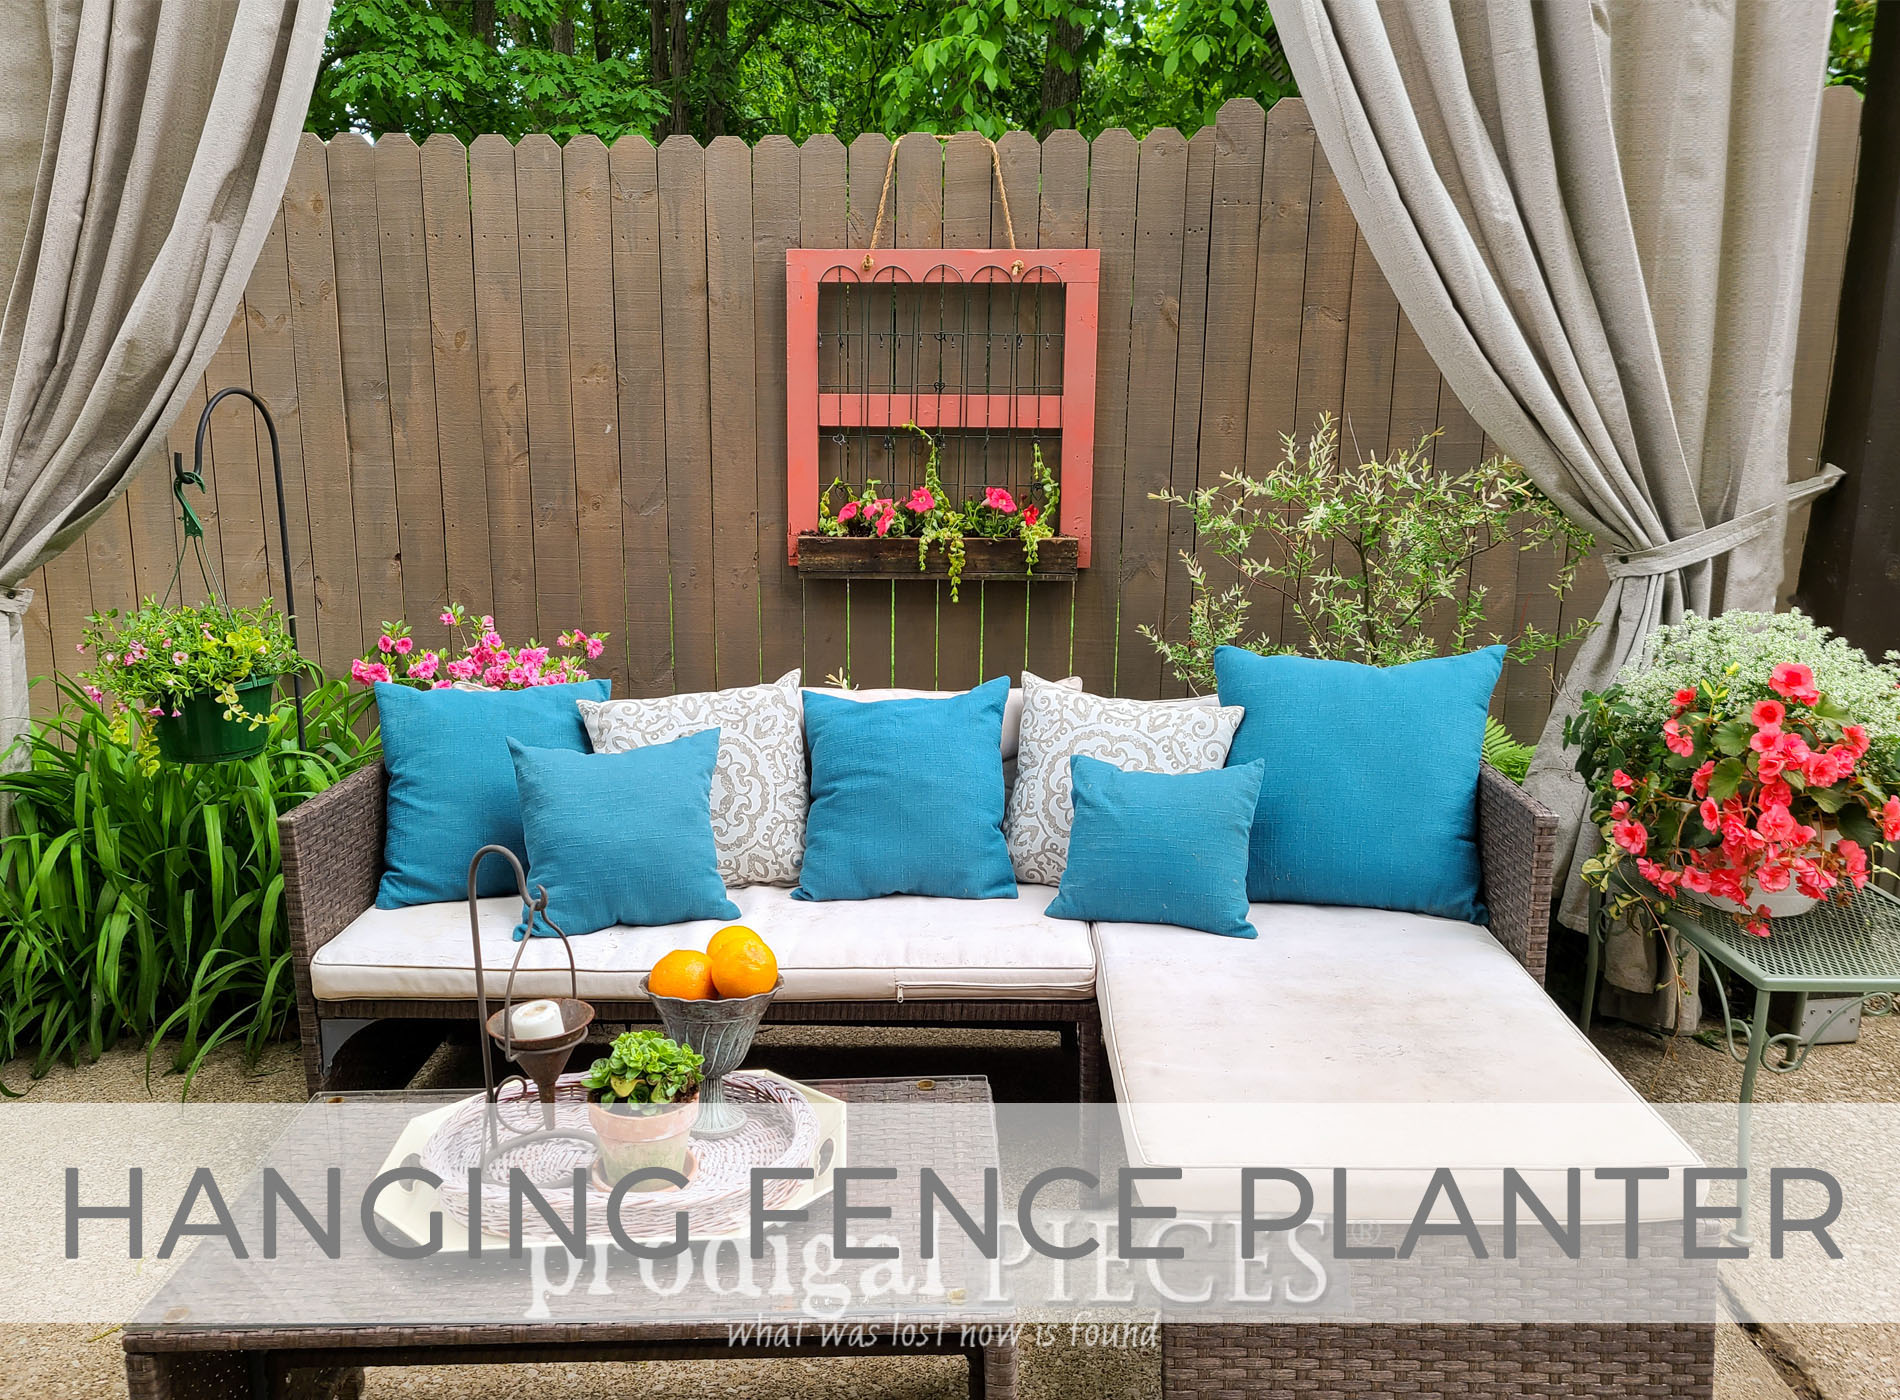 Hanging Fence Planter from Reclaimed Wood by Larissa of Prodigal Pieces | prodigalpieces.com #prodigalpieces